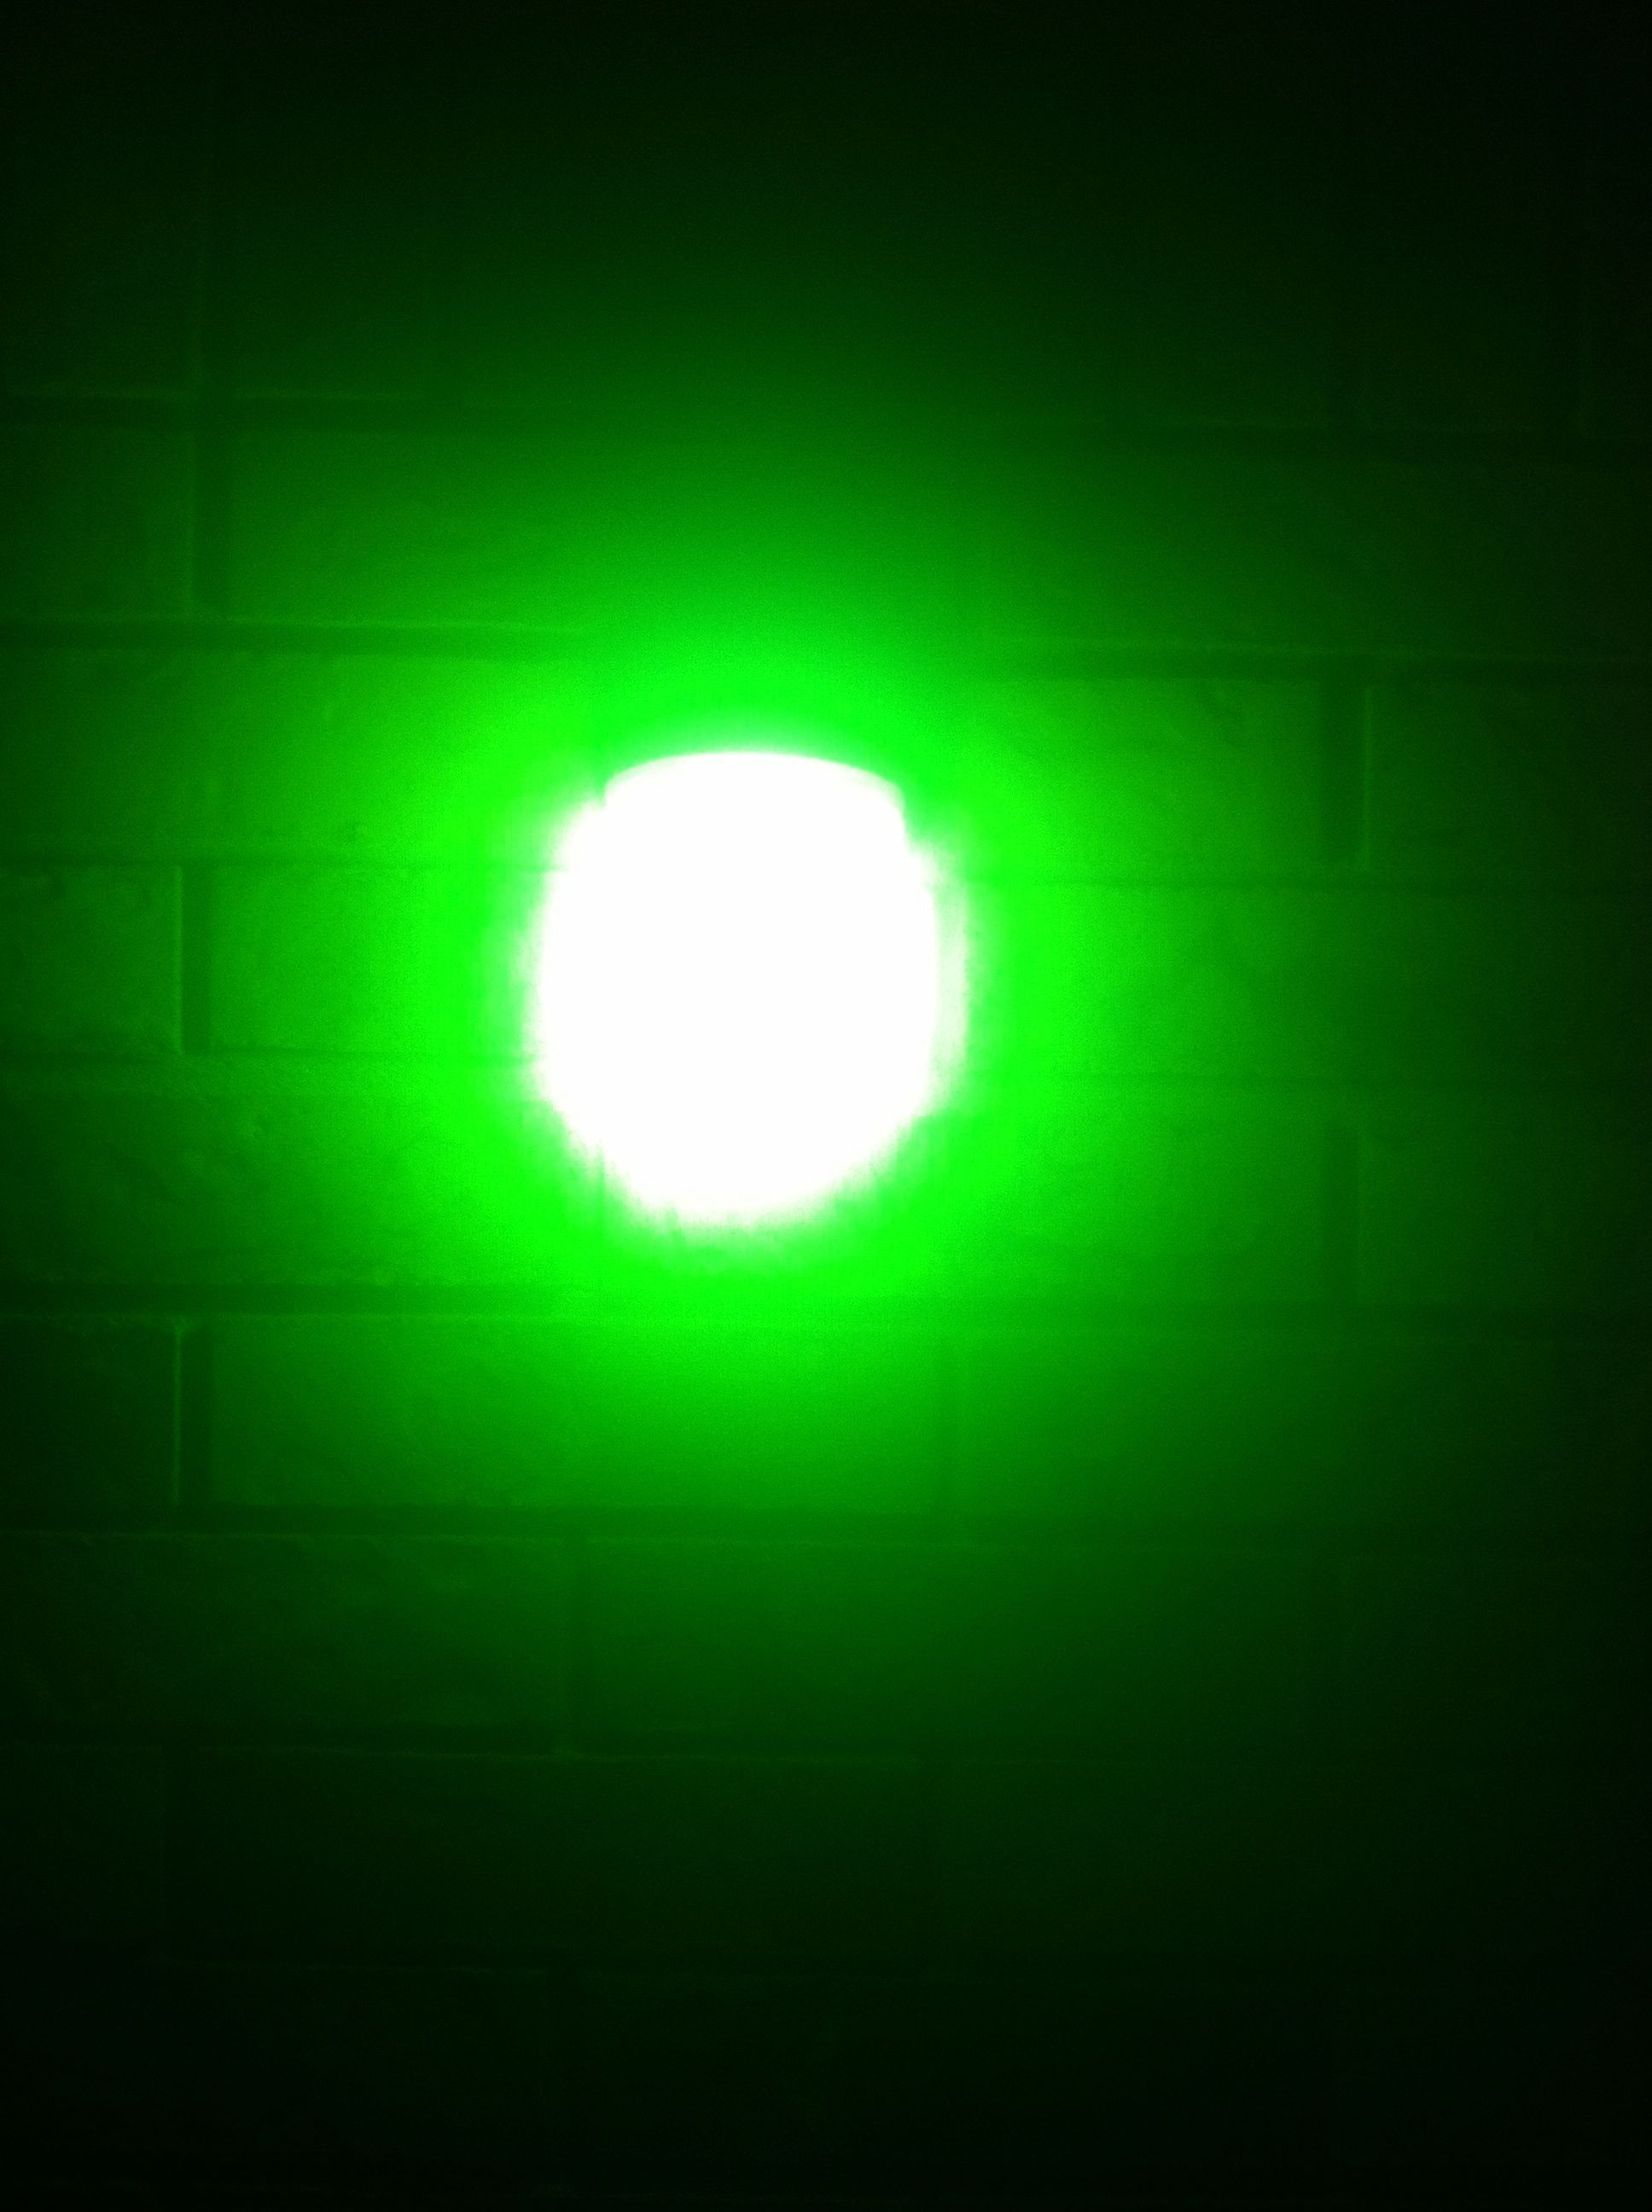 what does the green light symbolize in the great gatsby